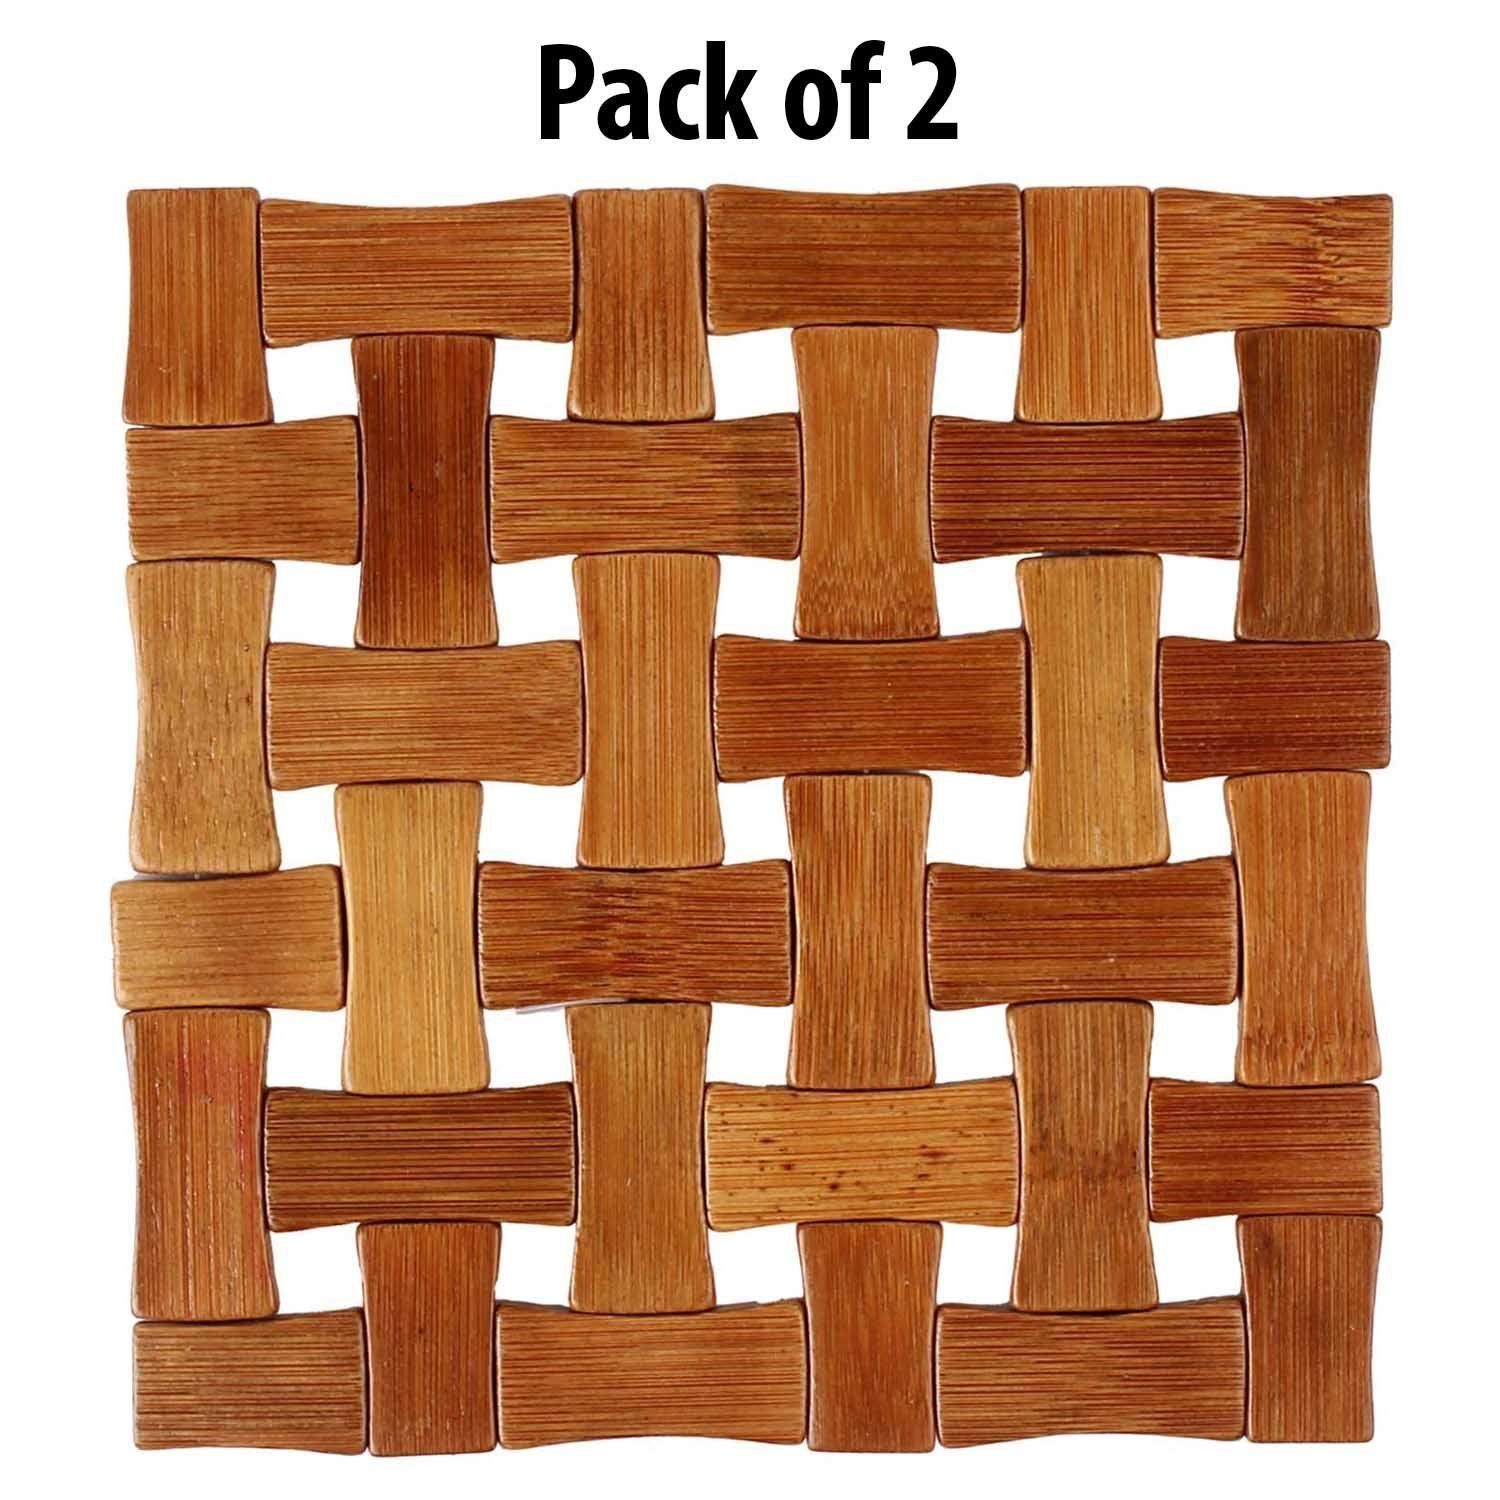 Wooden Coaster Holder Kuber Industries Bamboo Wooden Coaster Pan Pot Holder Heat Insulation Pad Square 13 X 13 Cm 2 Piece Set Ki3432